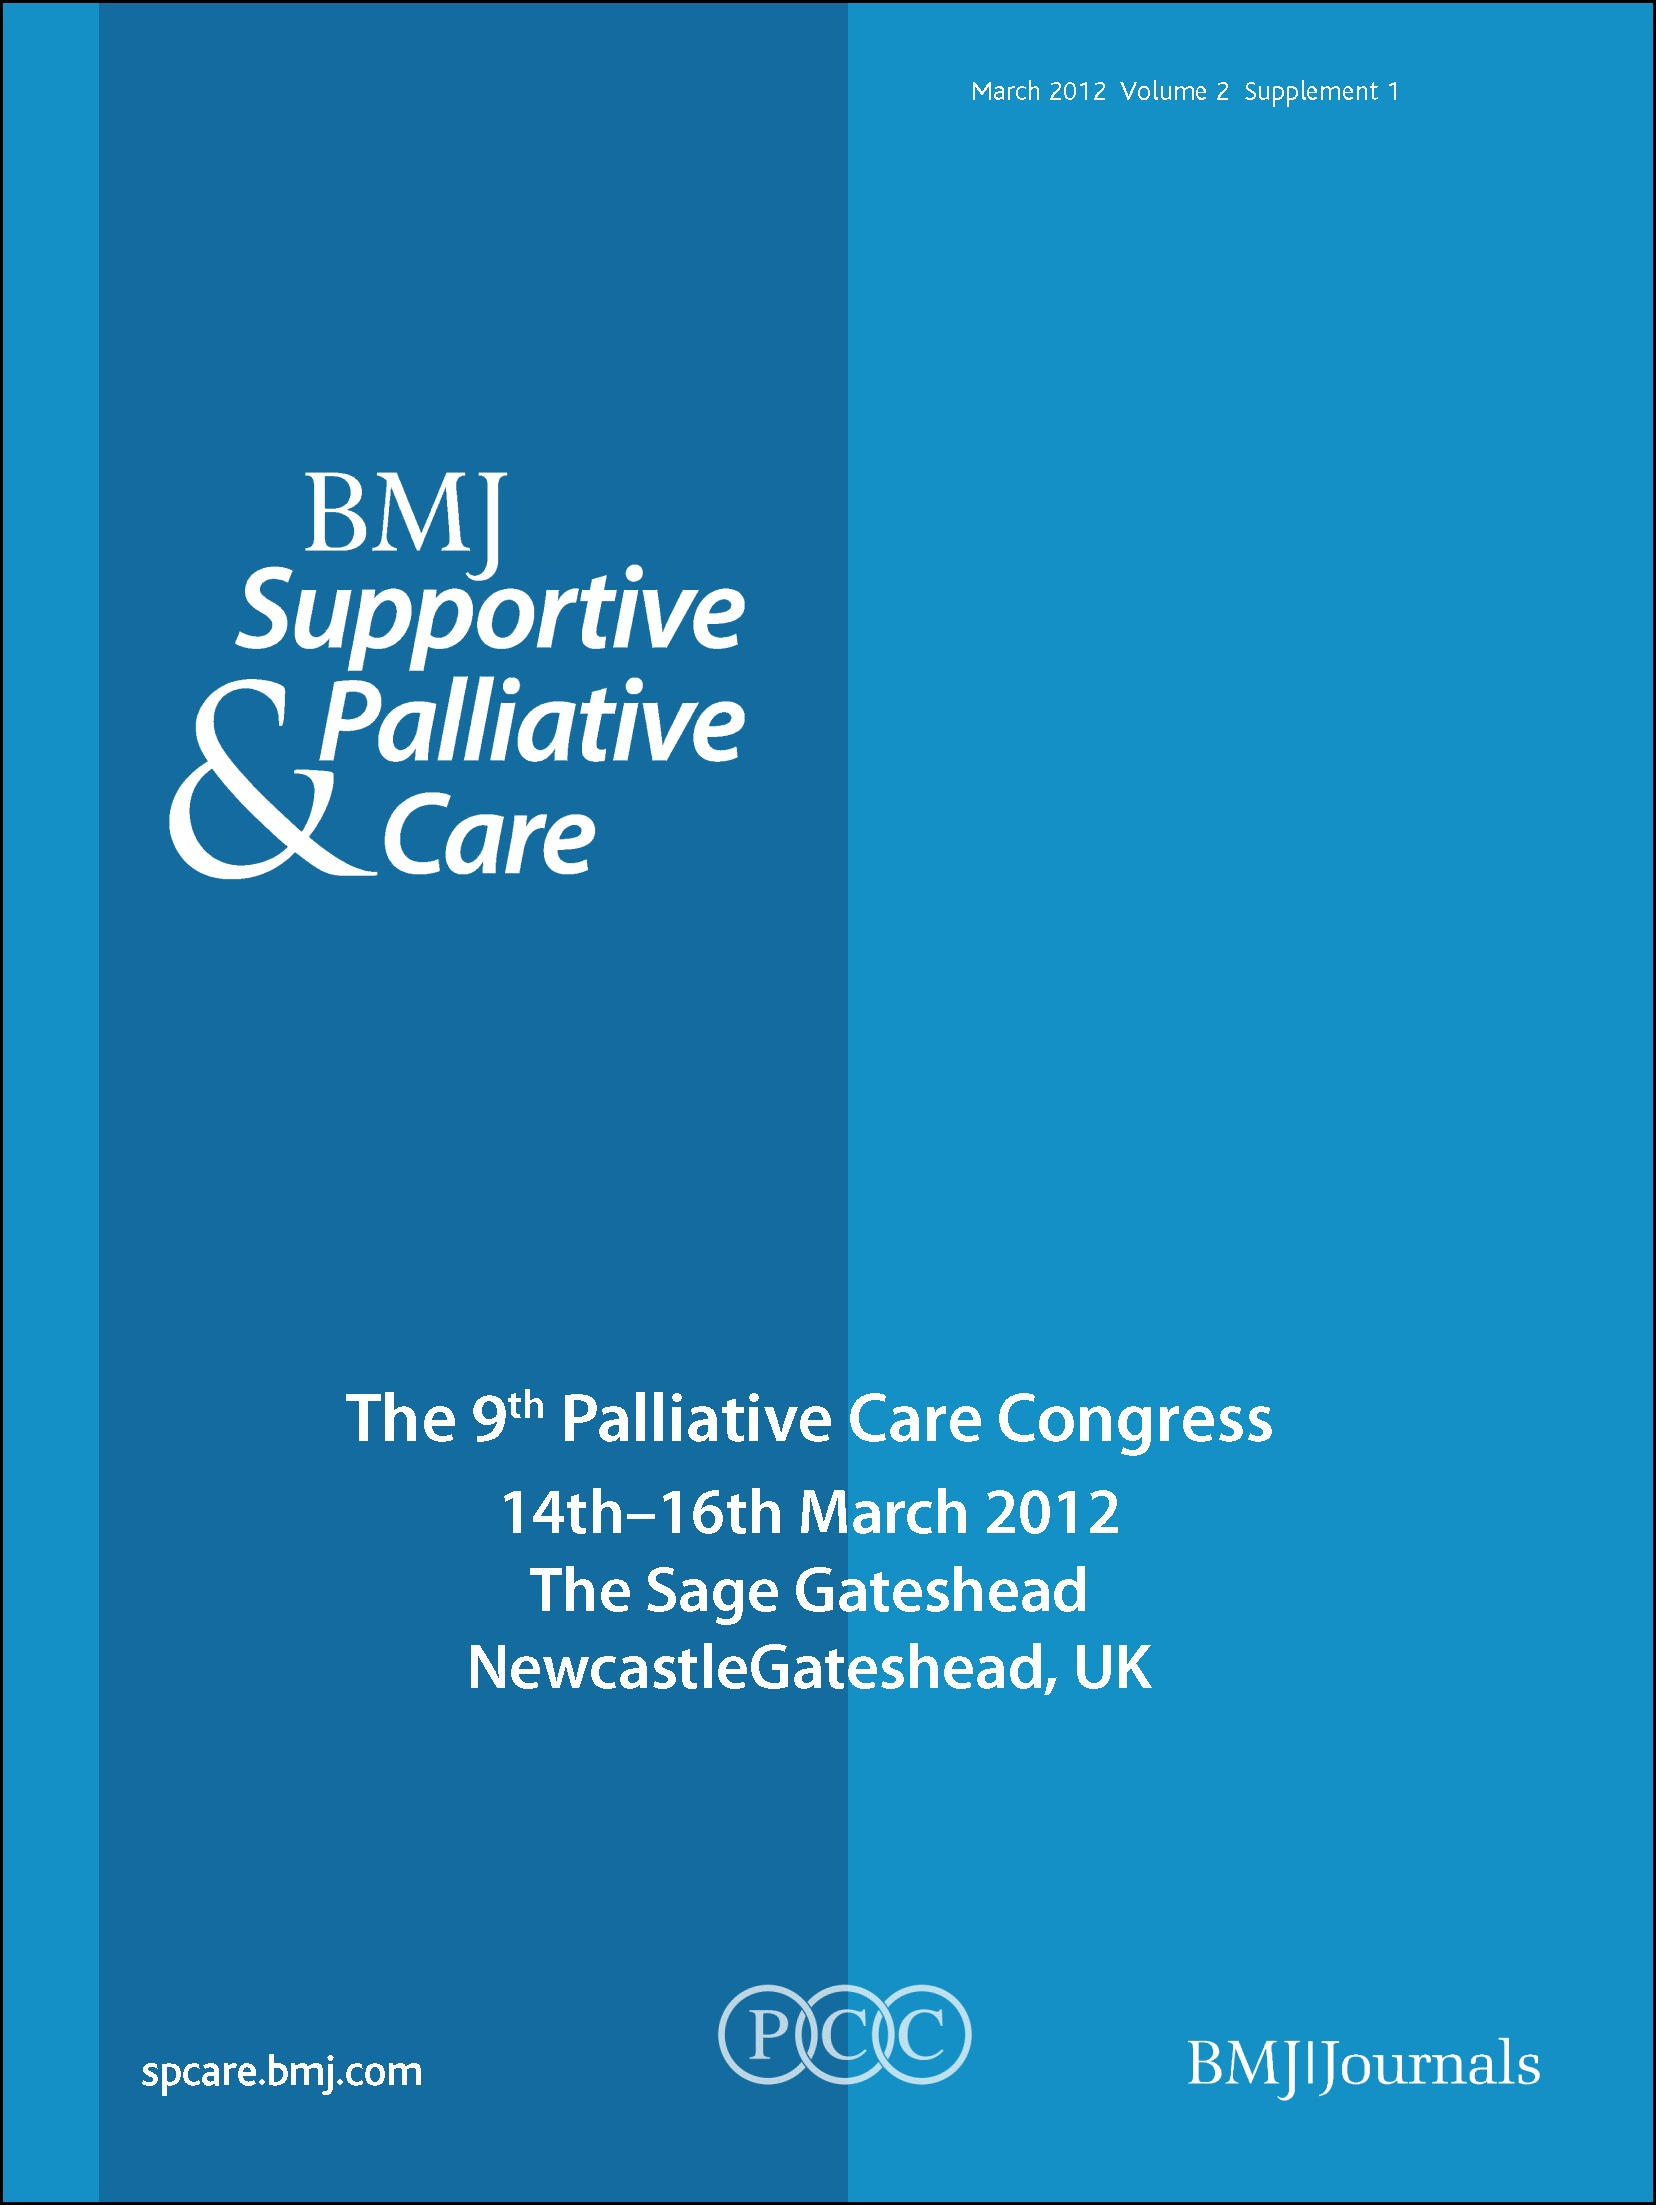 BMJ support pall care